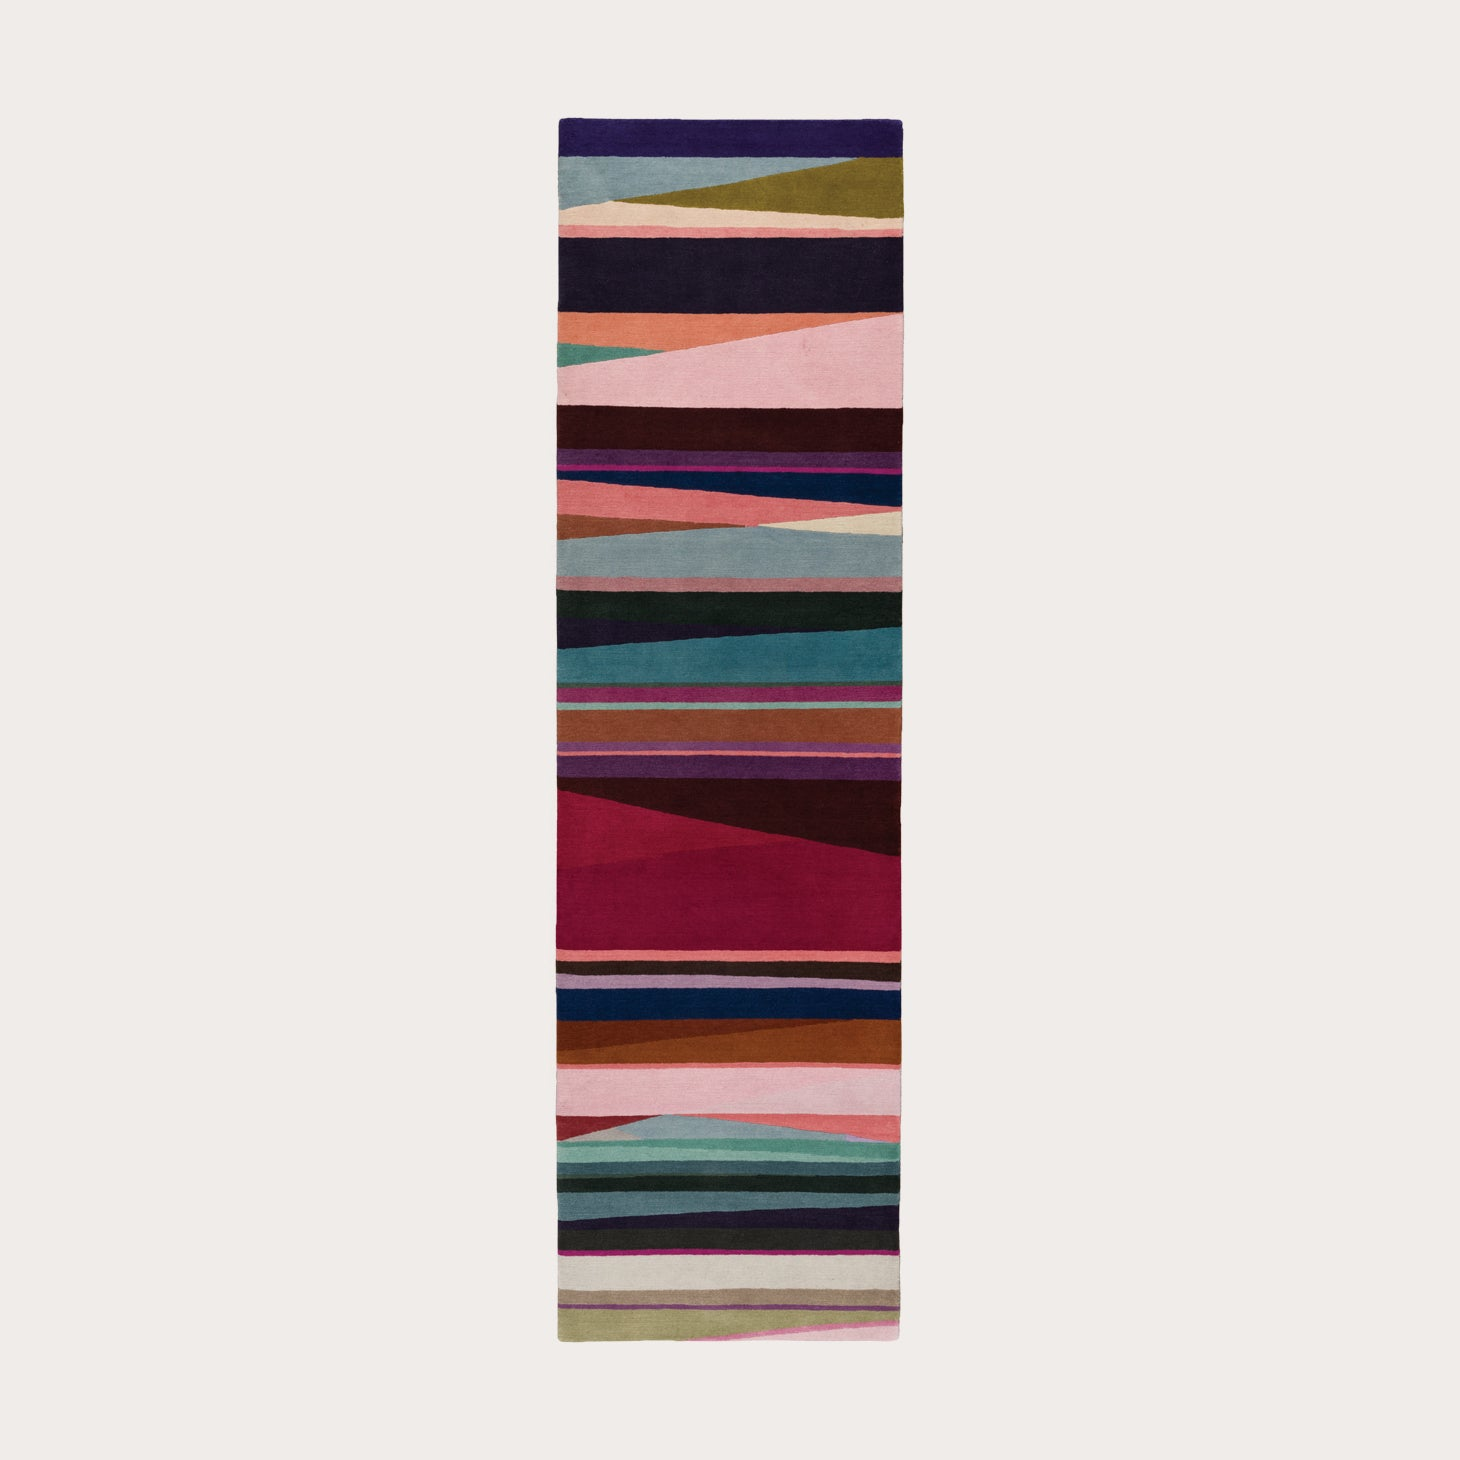 Refraction Bright Floor Coverings Paul Smith Designer Furniture Sku: 391-150-11252